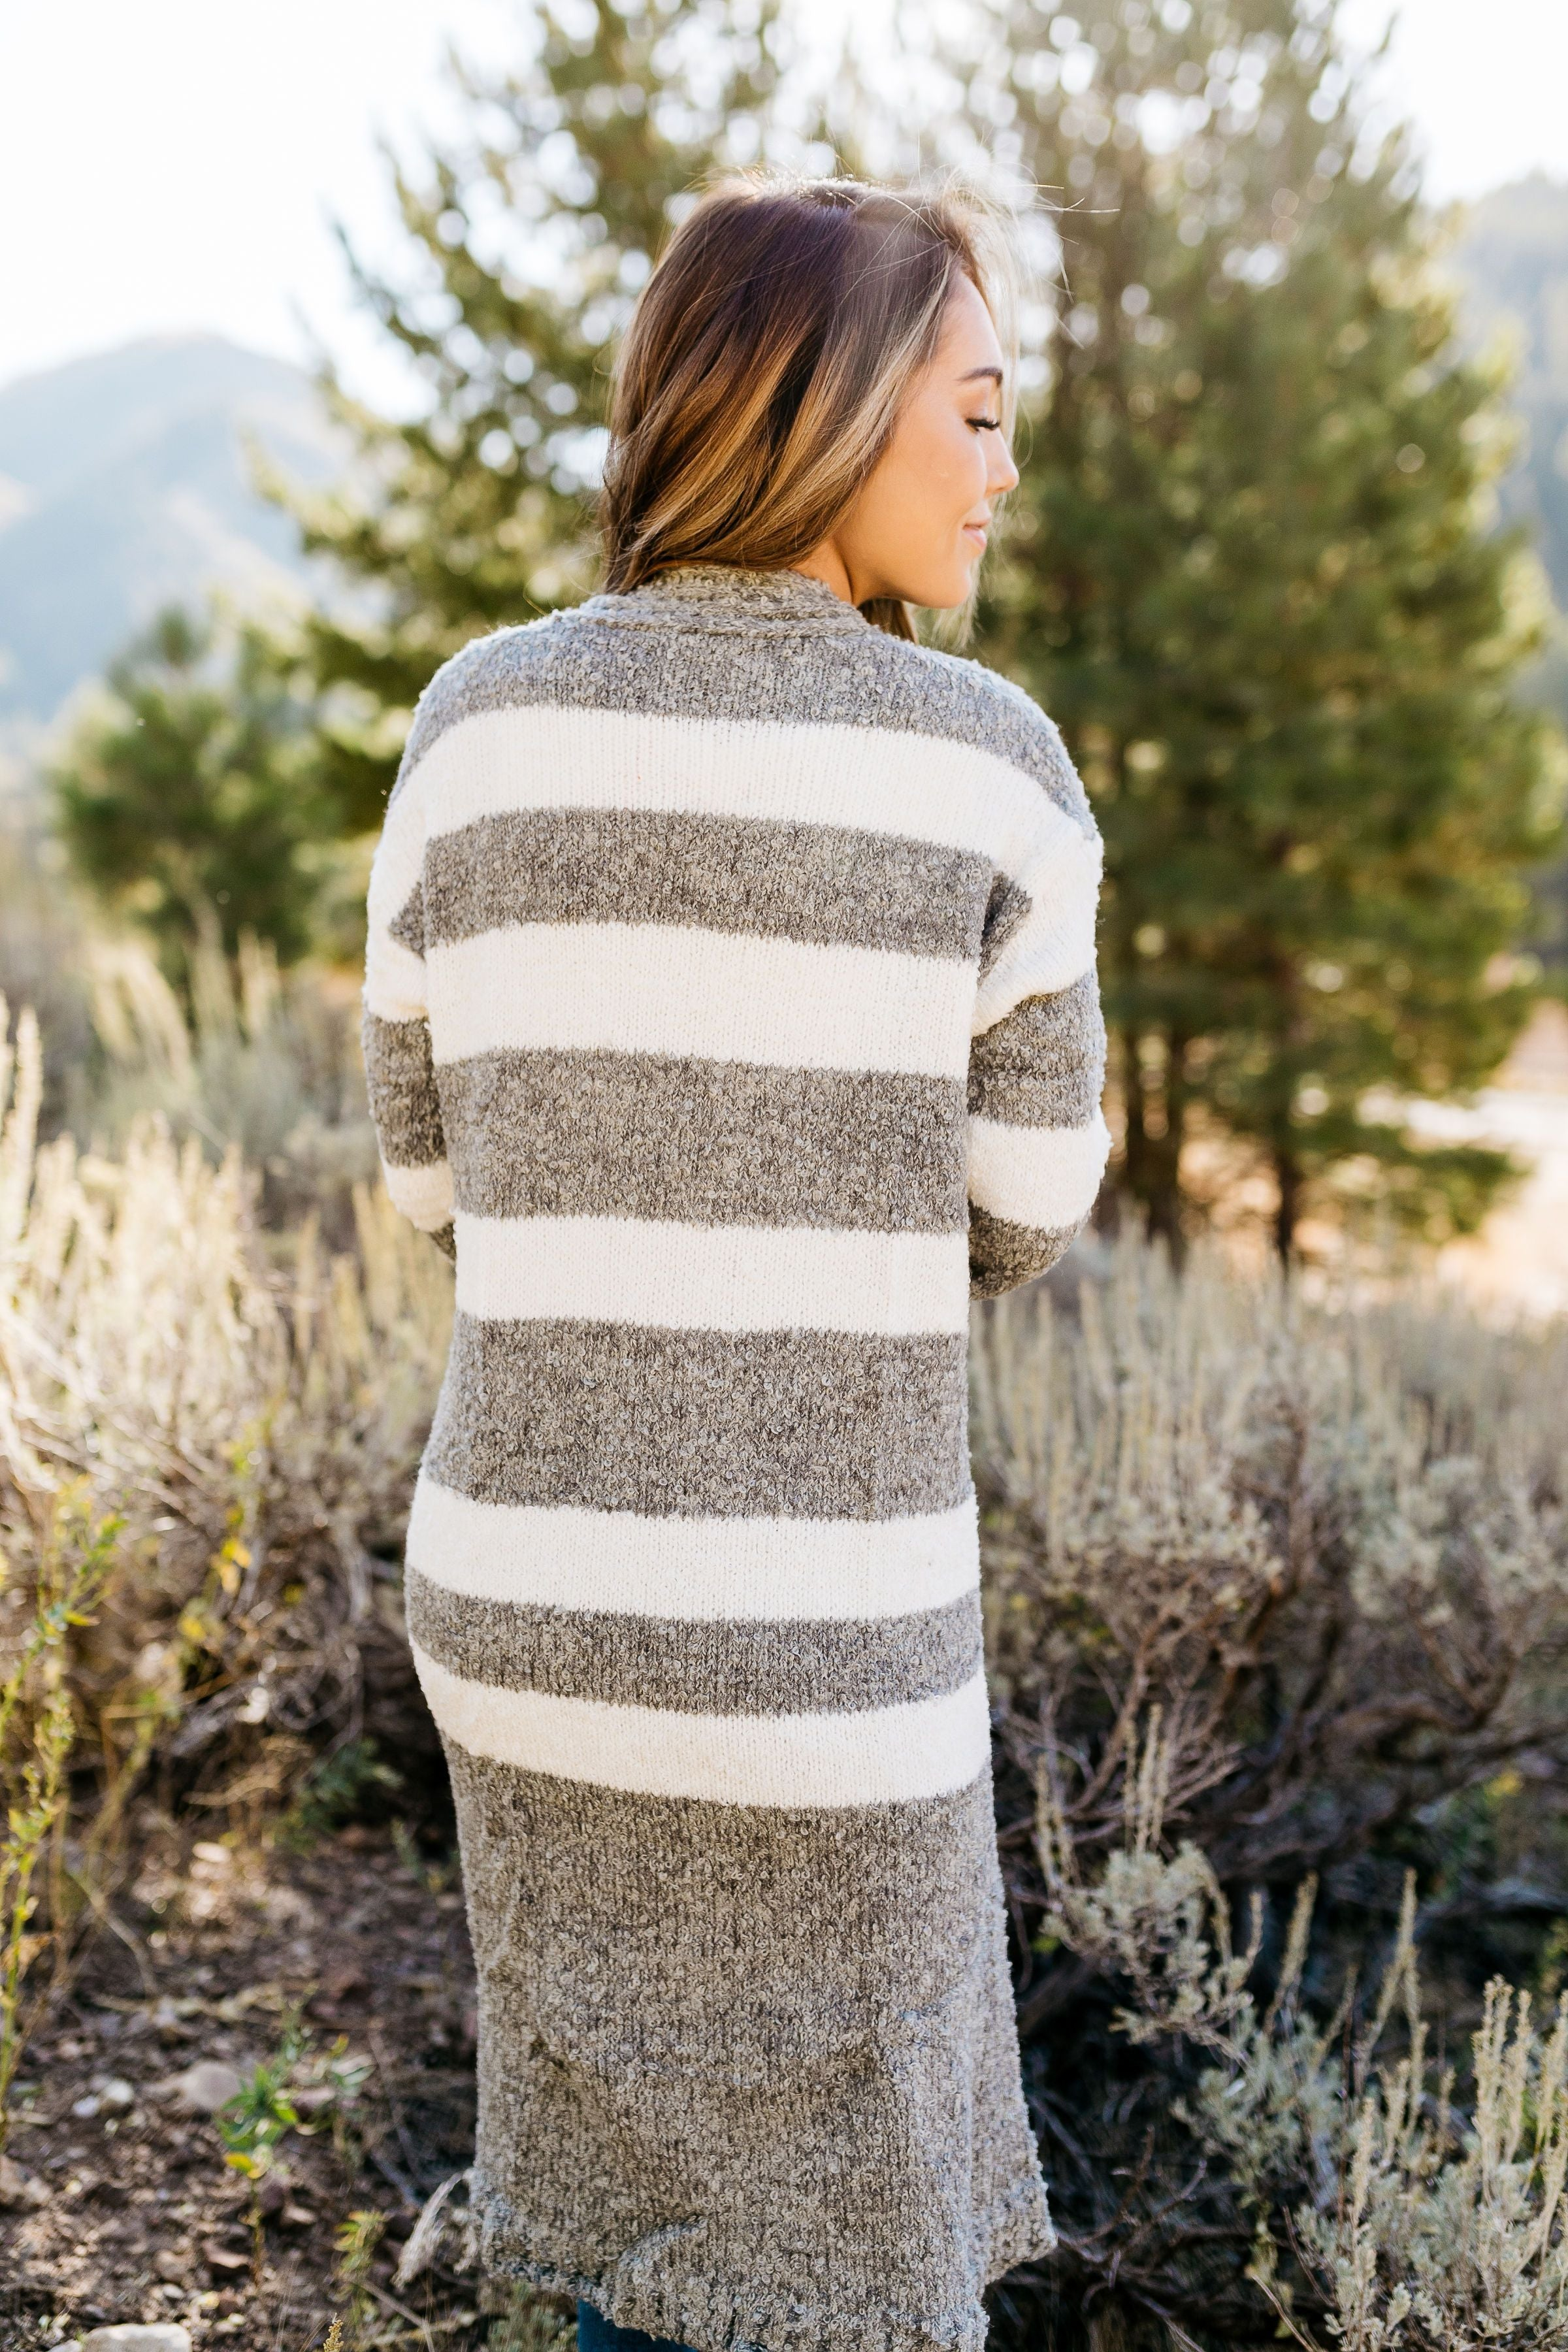 The Amelia Striped Cardi in Gray - ALL SALES FINAL